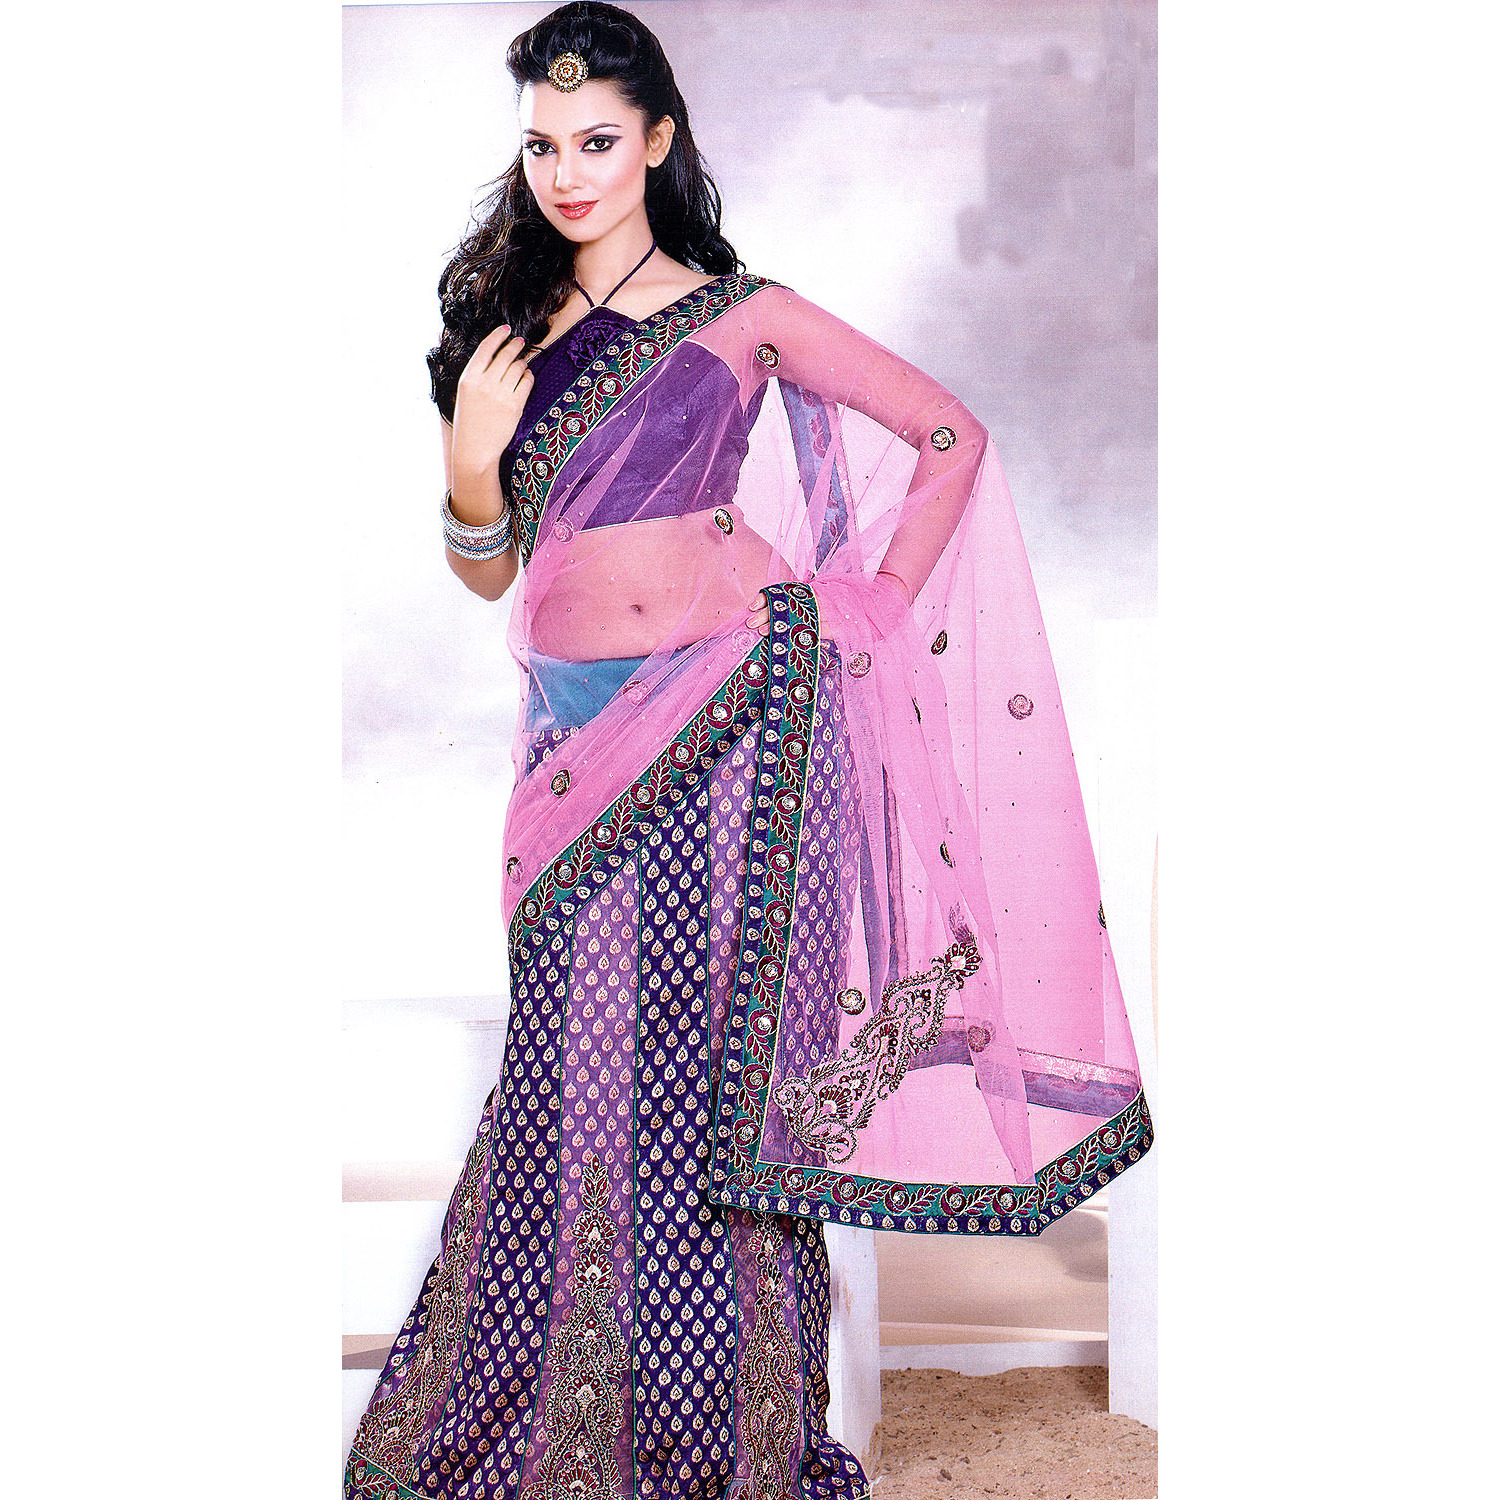 Pink and Purple Wedding Lehenga-Sari with All-Over Metallic Thread Embroidery,Beads and Sequins